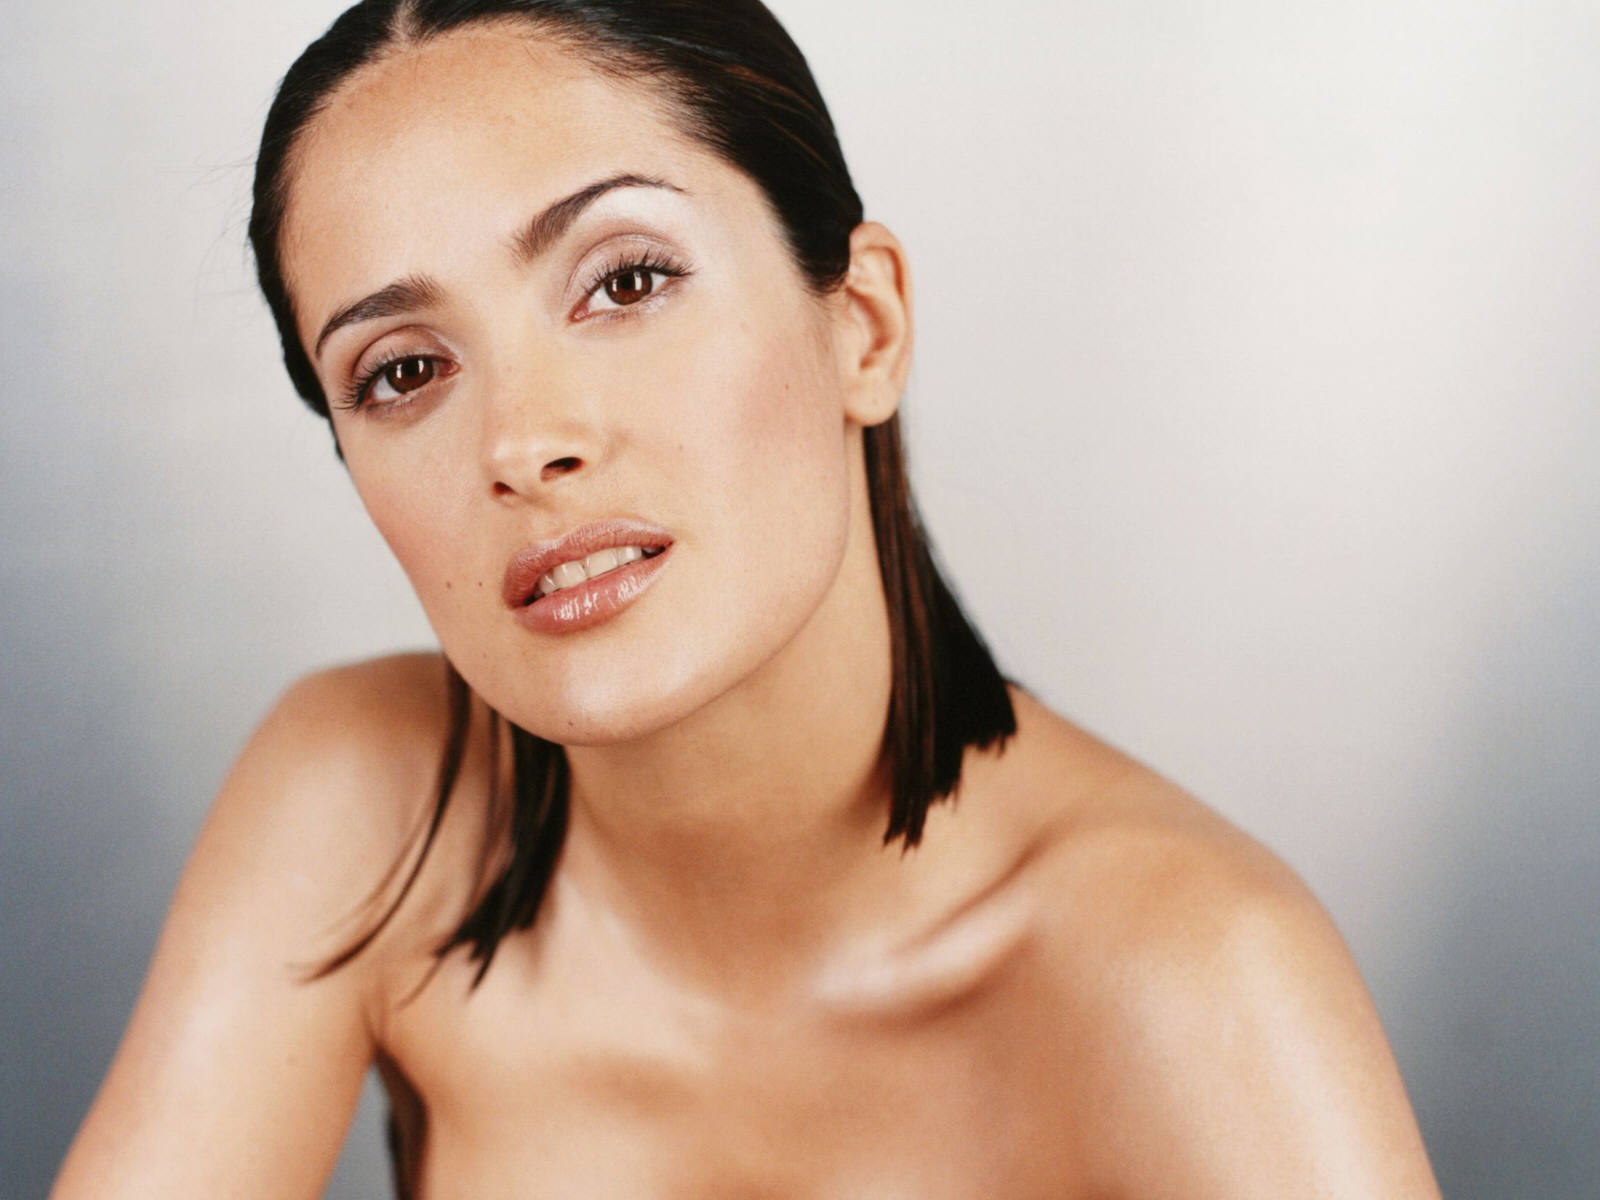 Hot Beautifull Women In Hollywood Actress Salma Hayek